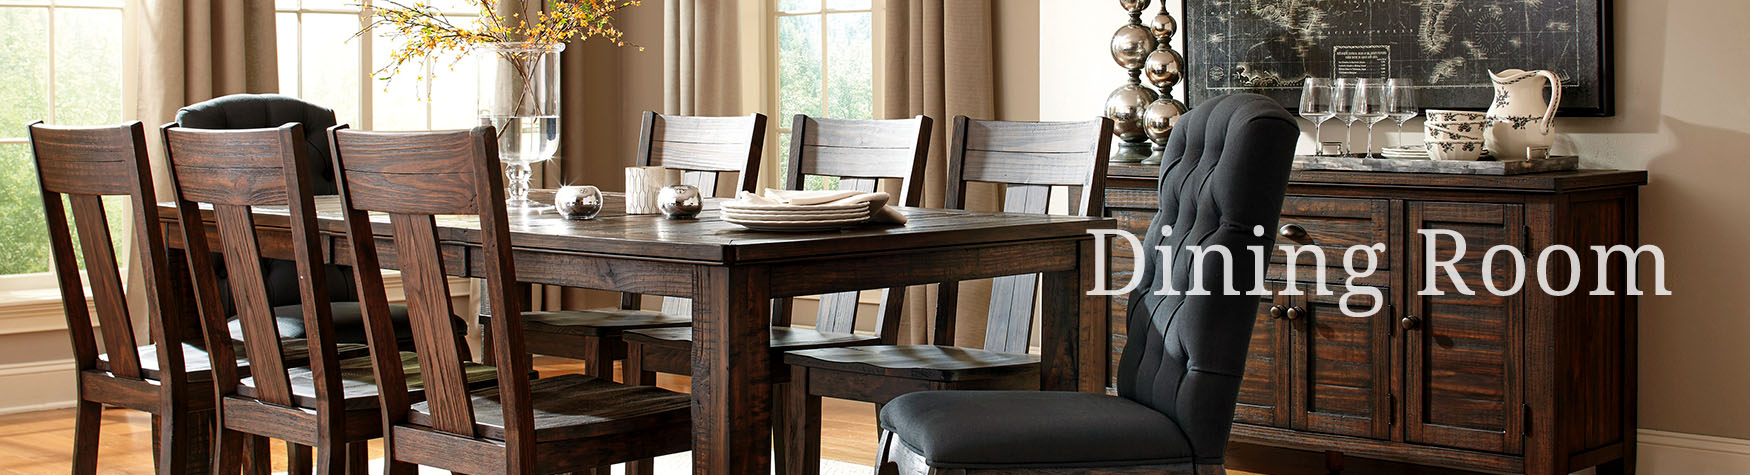 Dining Room Furniture On Sale Near Ft Bragg In Fayetteville Nc At